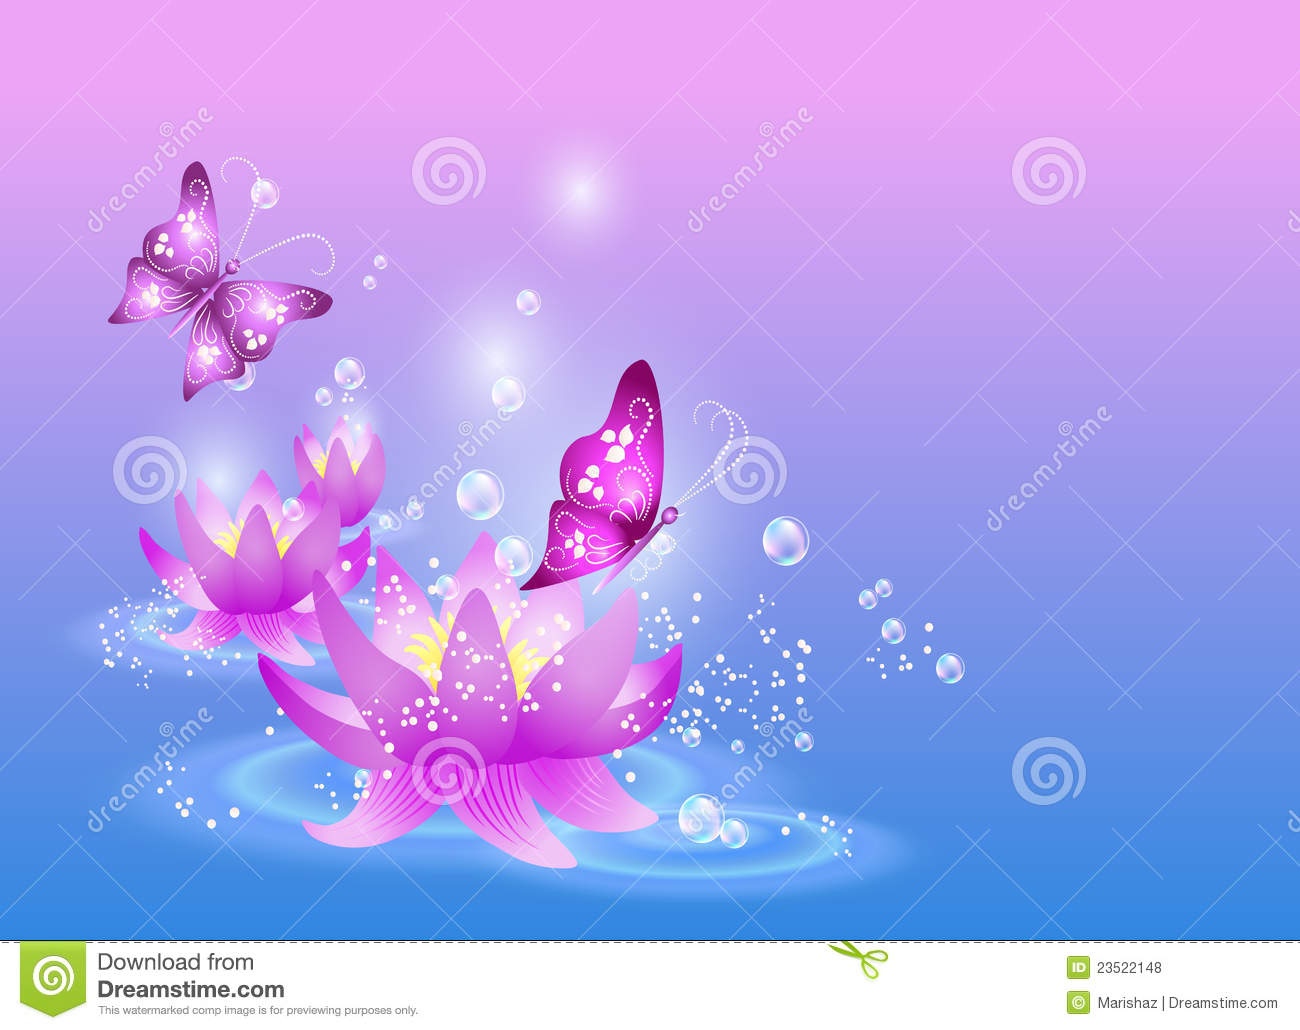 Lilies And Butterfly Royalty Free Stock Photos Image 23522148